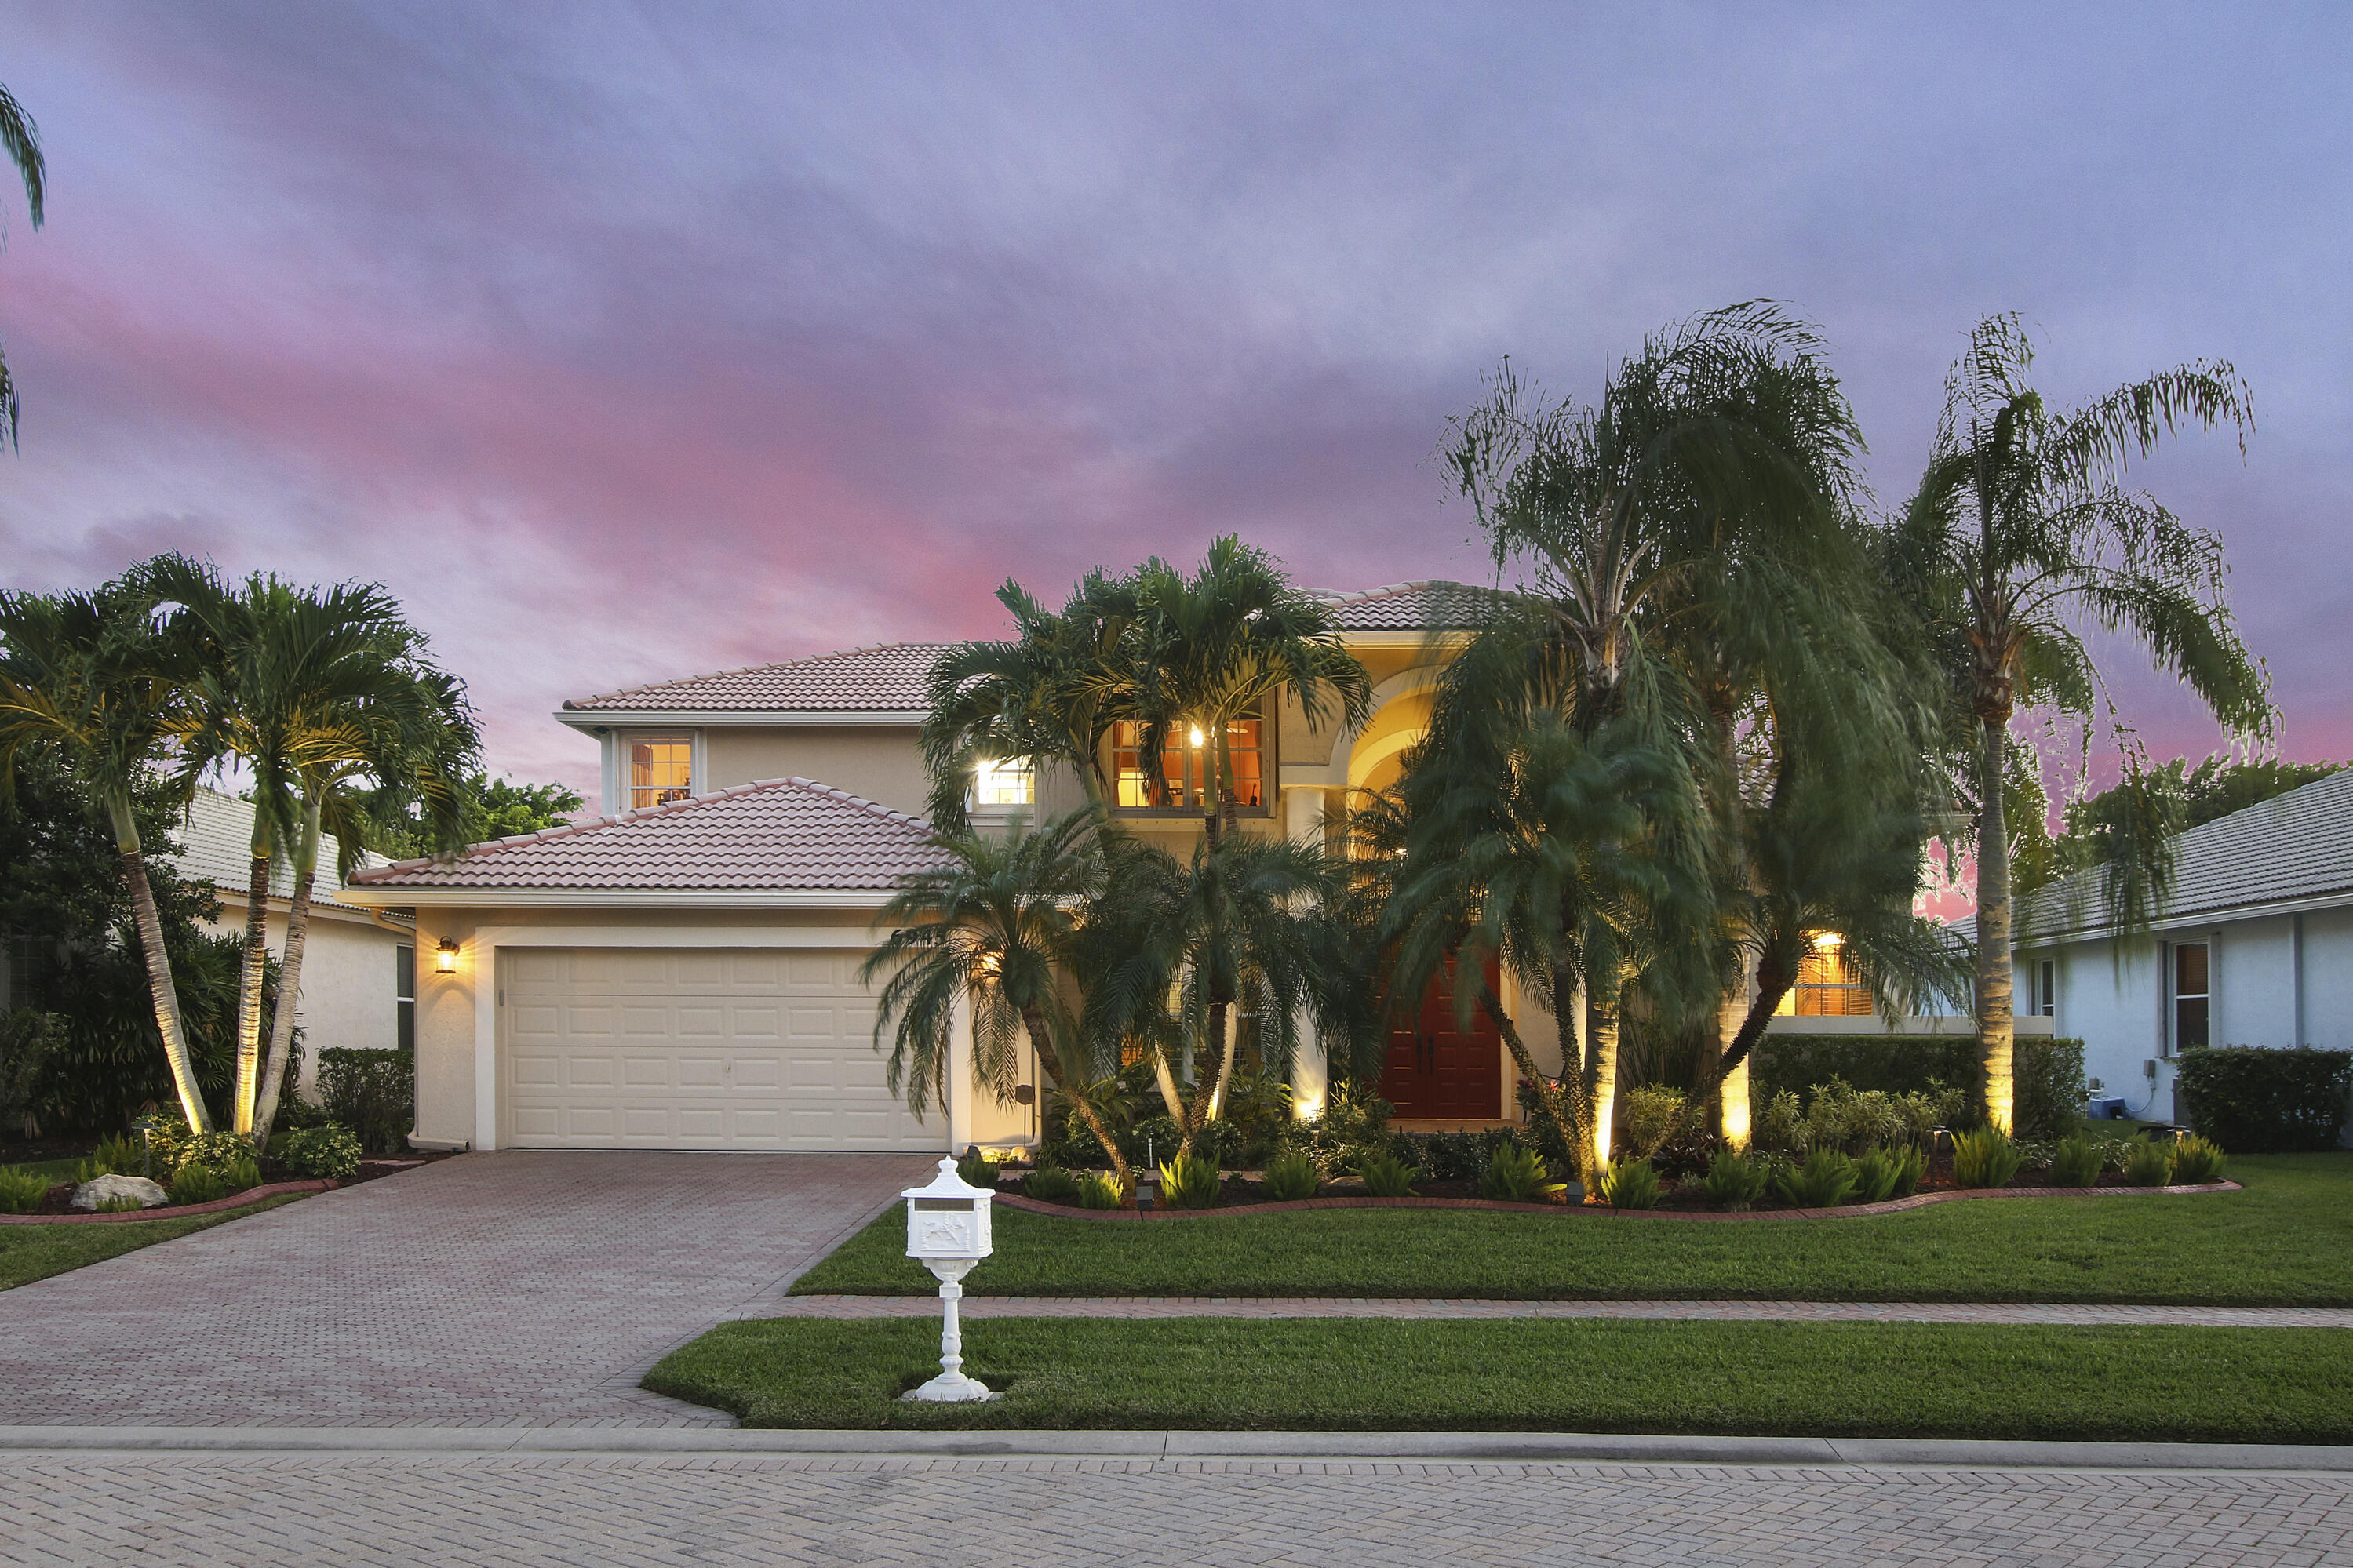 6945  Cobia Circle  For Sale 10754305, FL